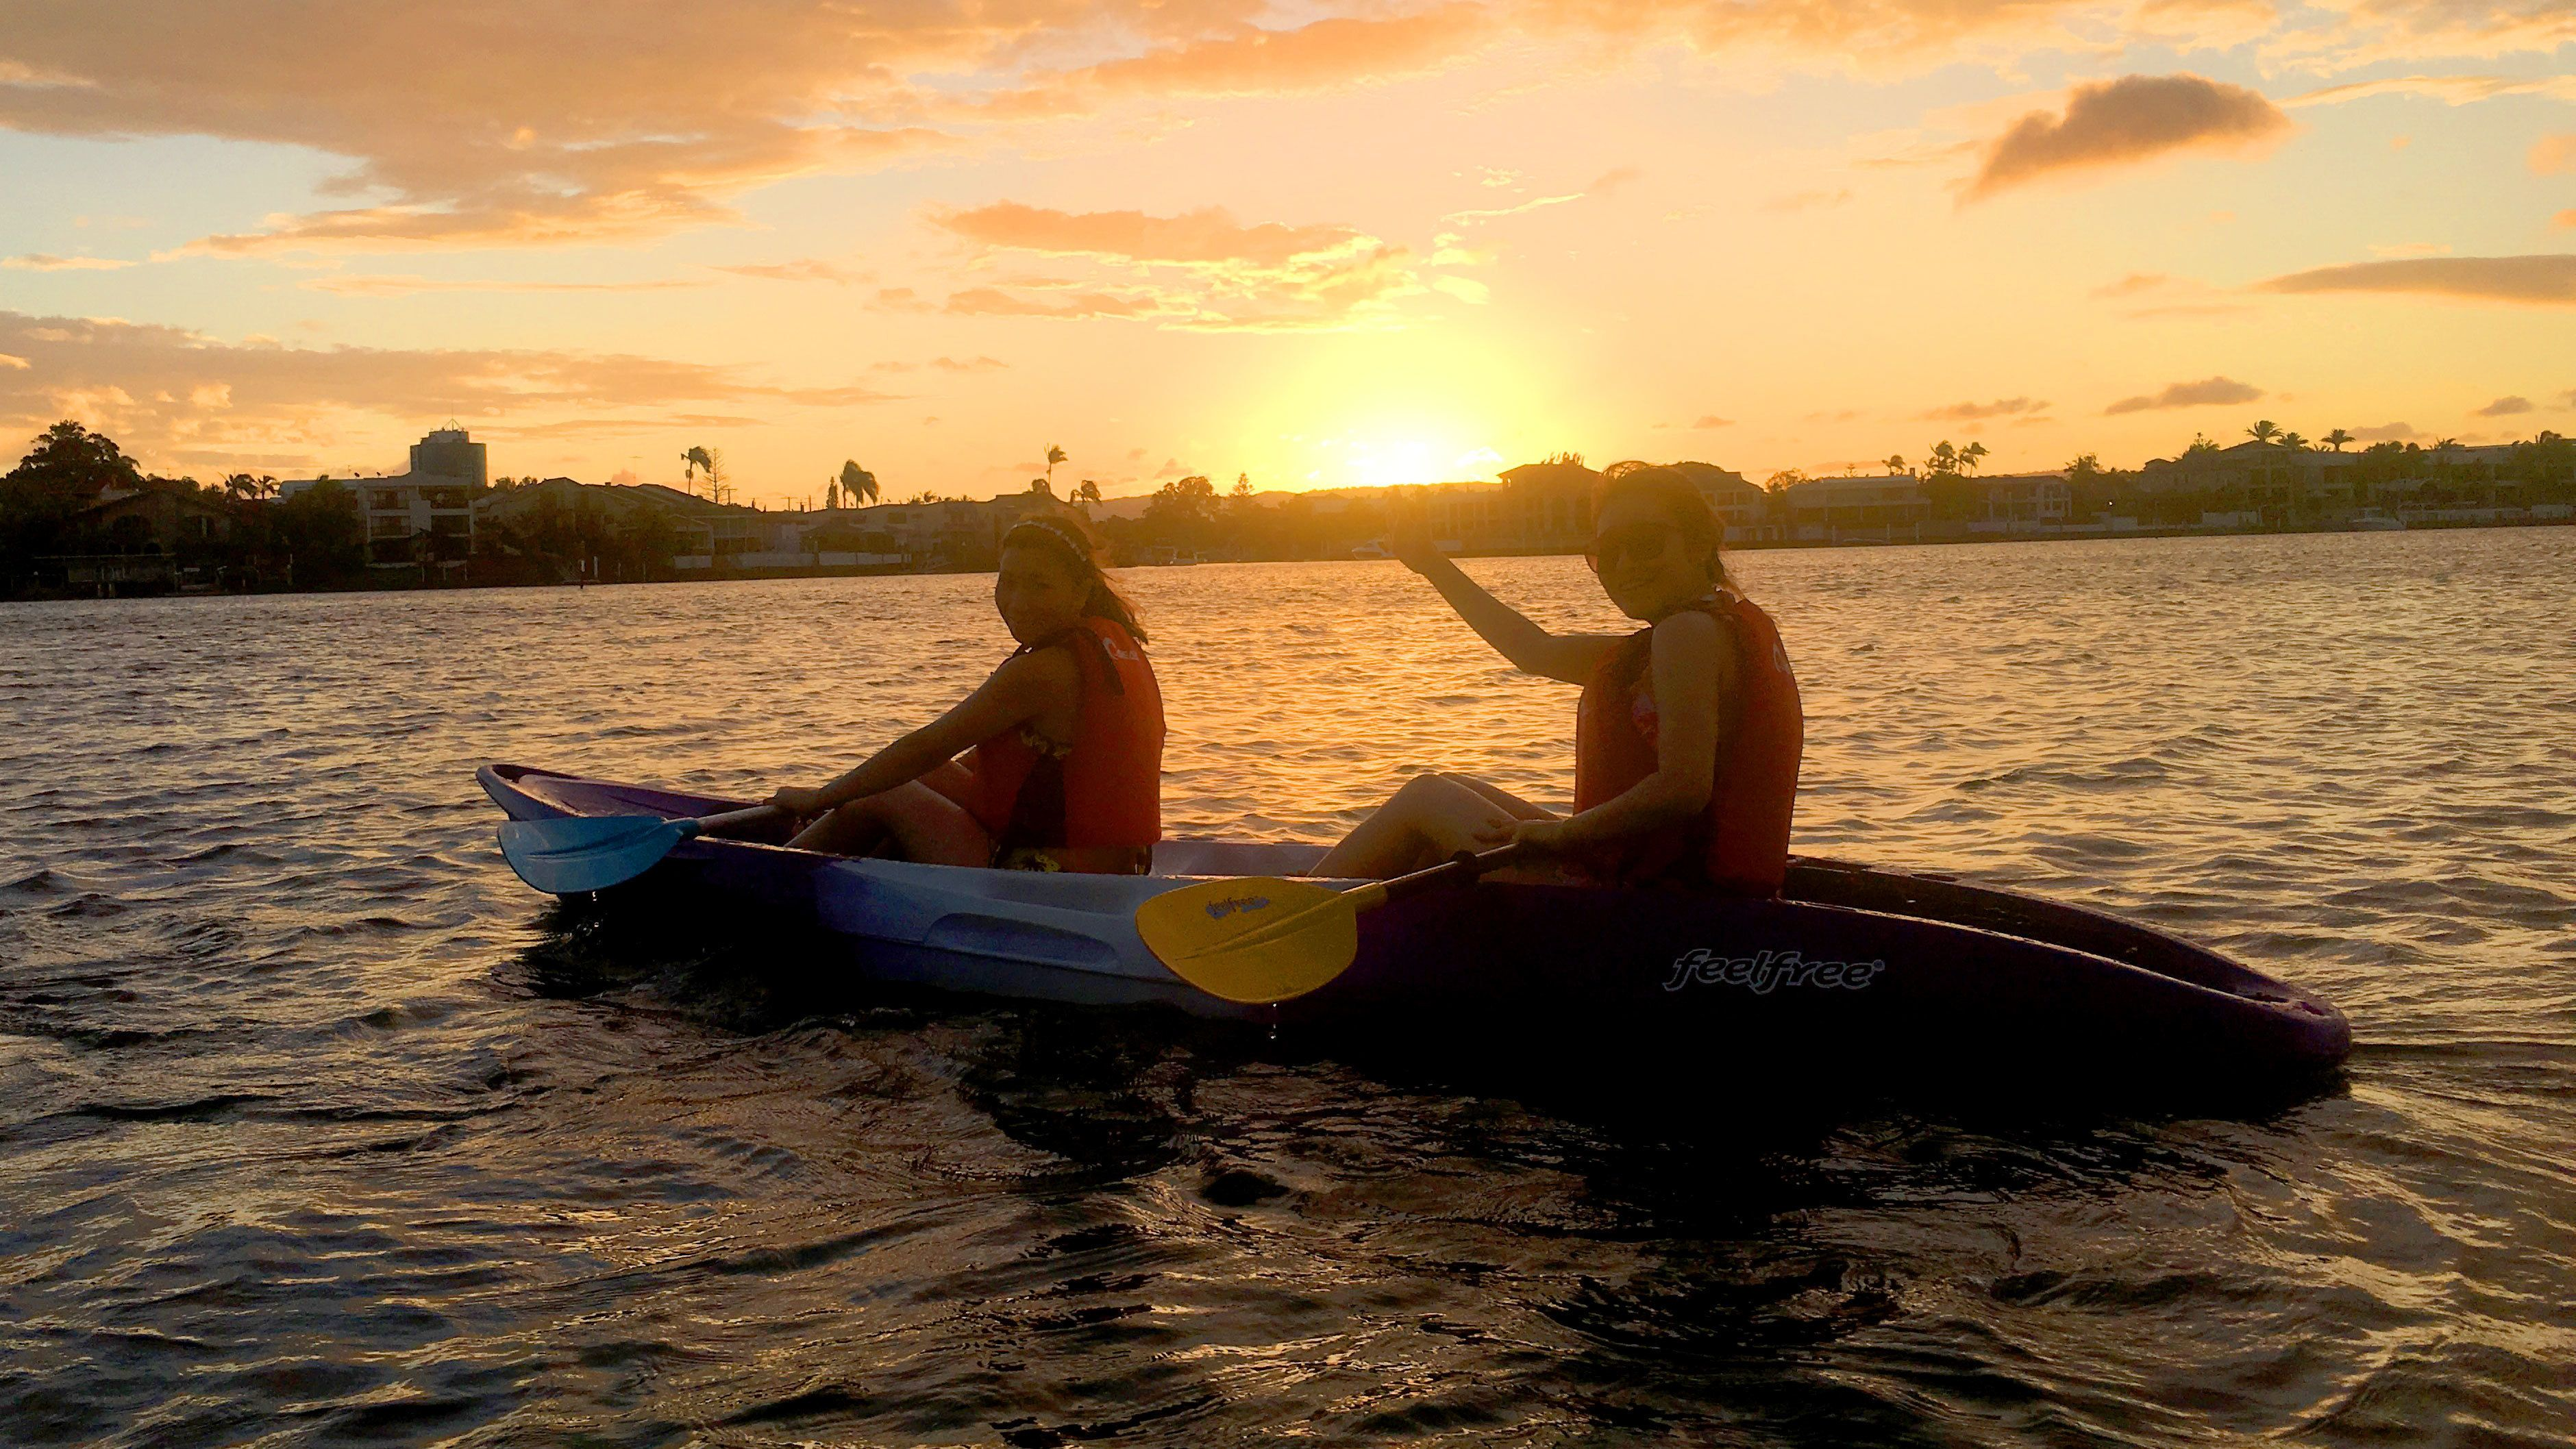 Two people in a kayak at sunset